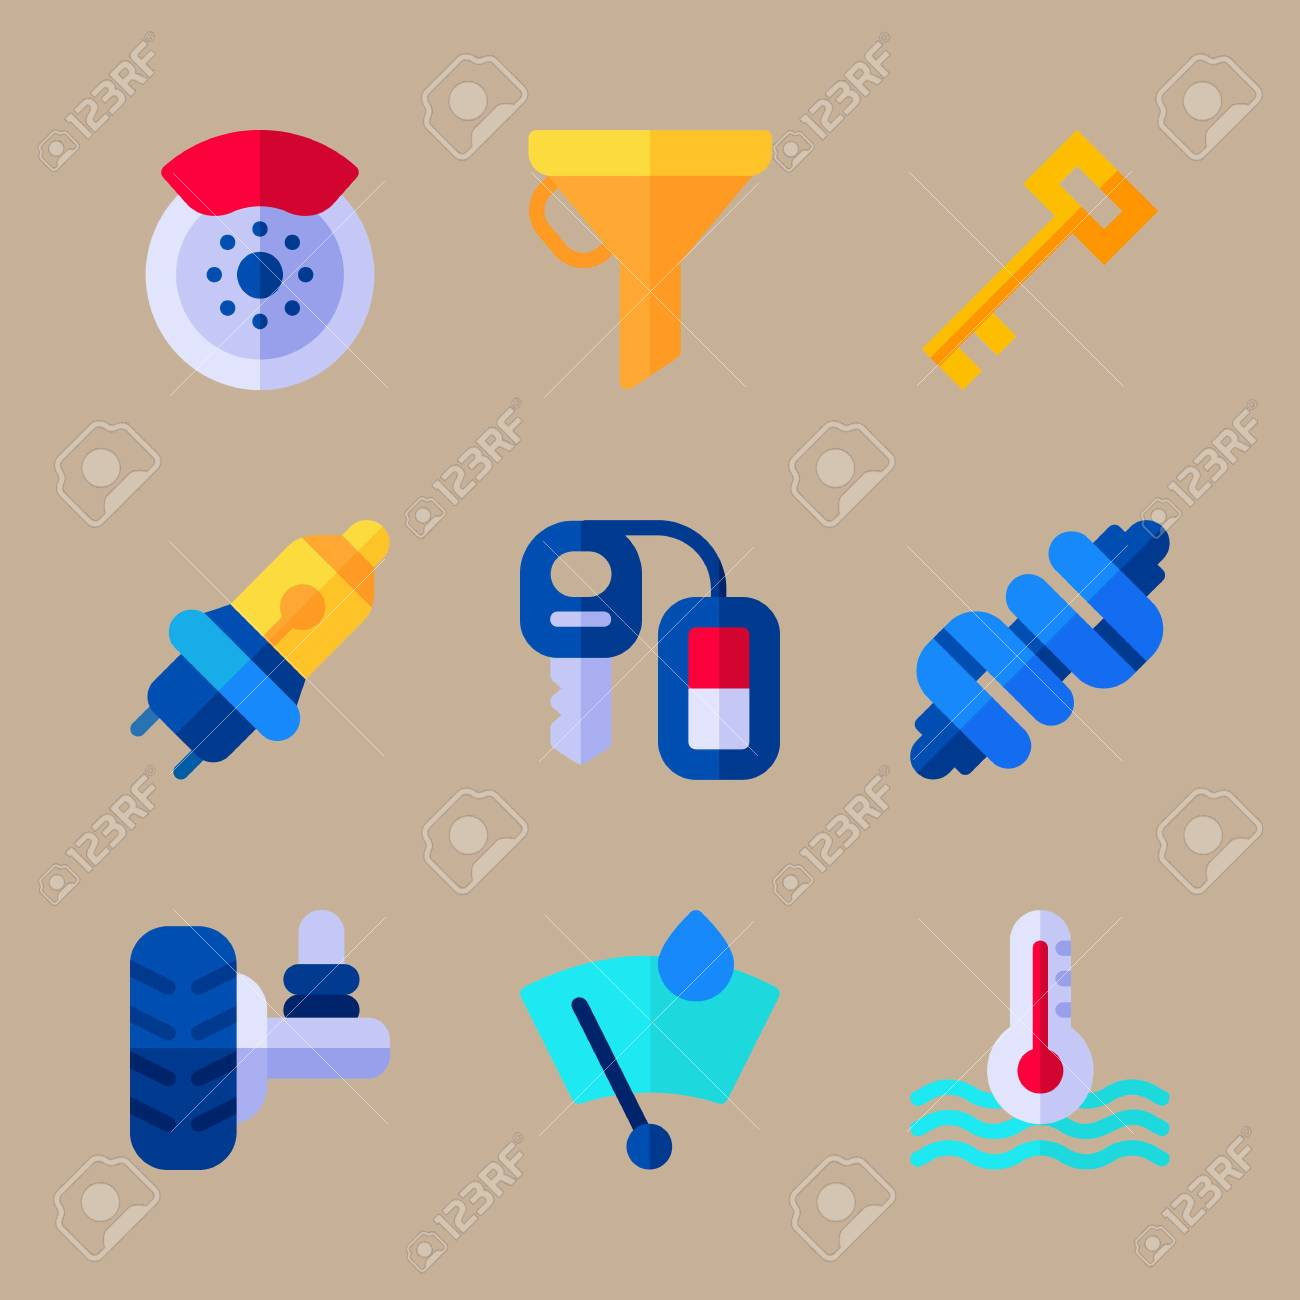 hight resolution of icon set about car engine with drop of rain heat and brake stock vector